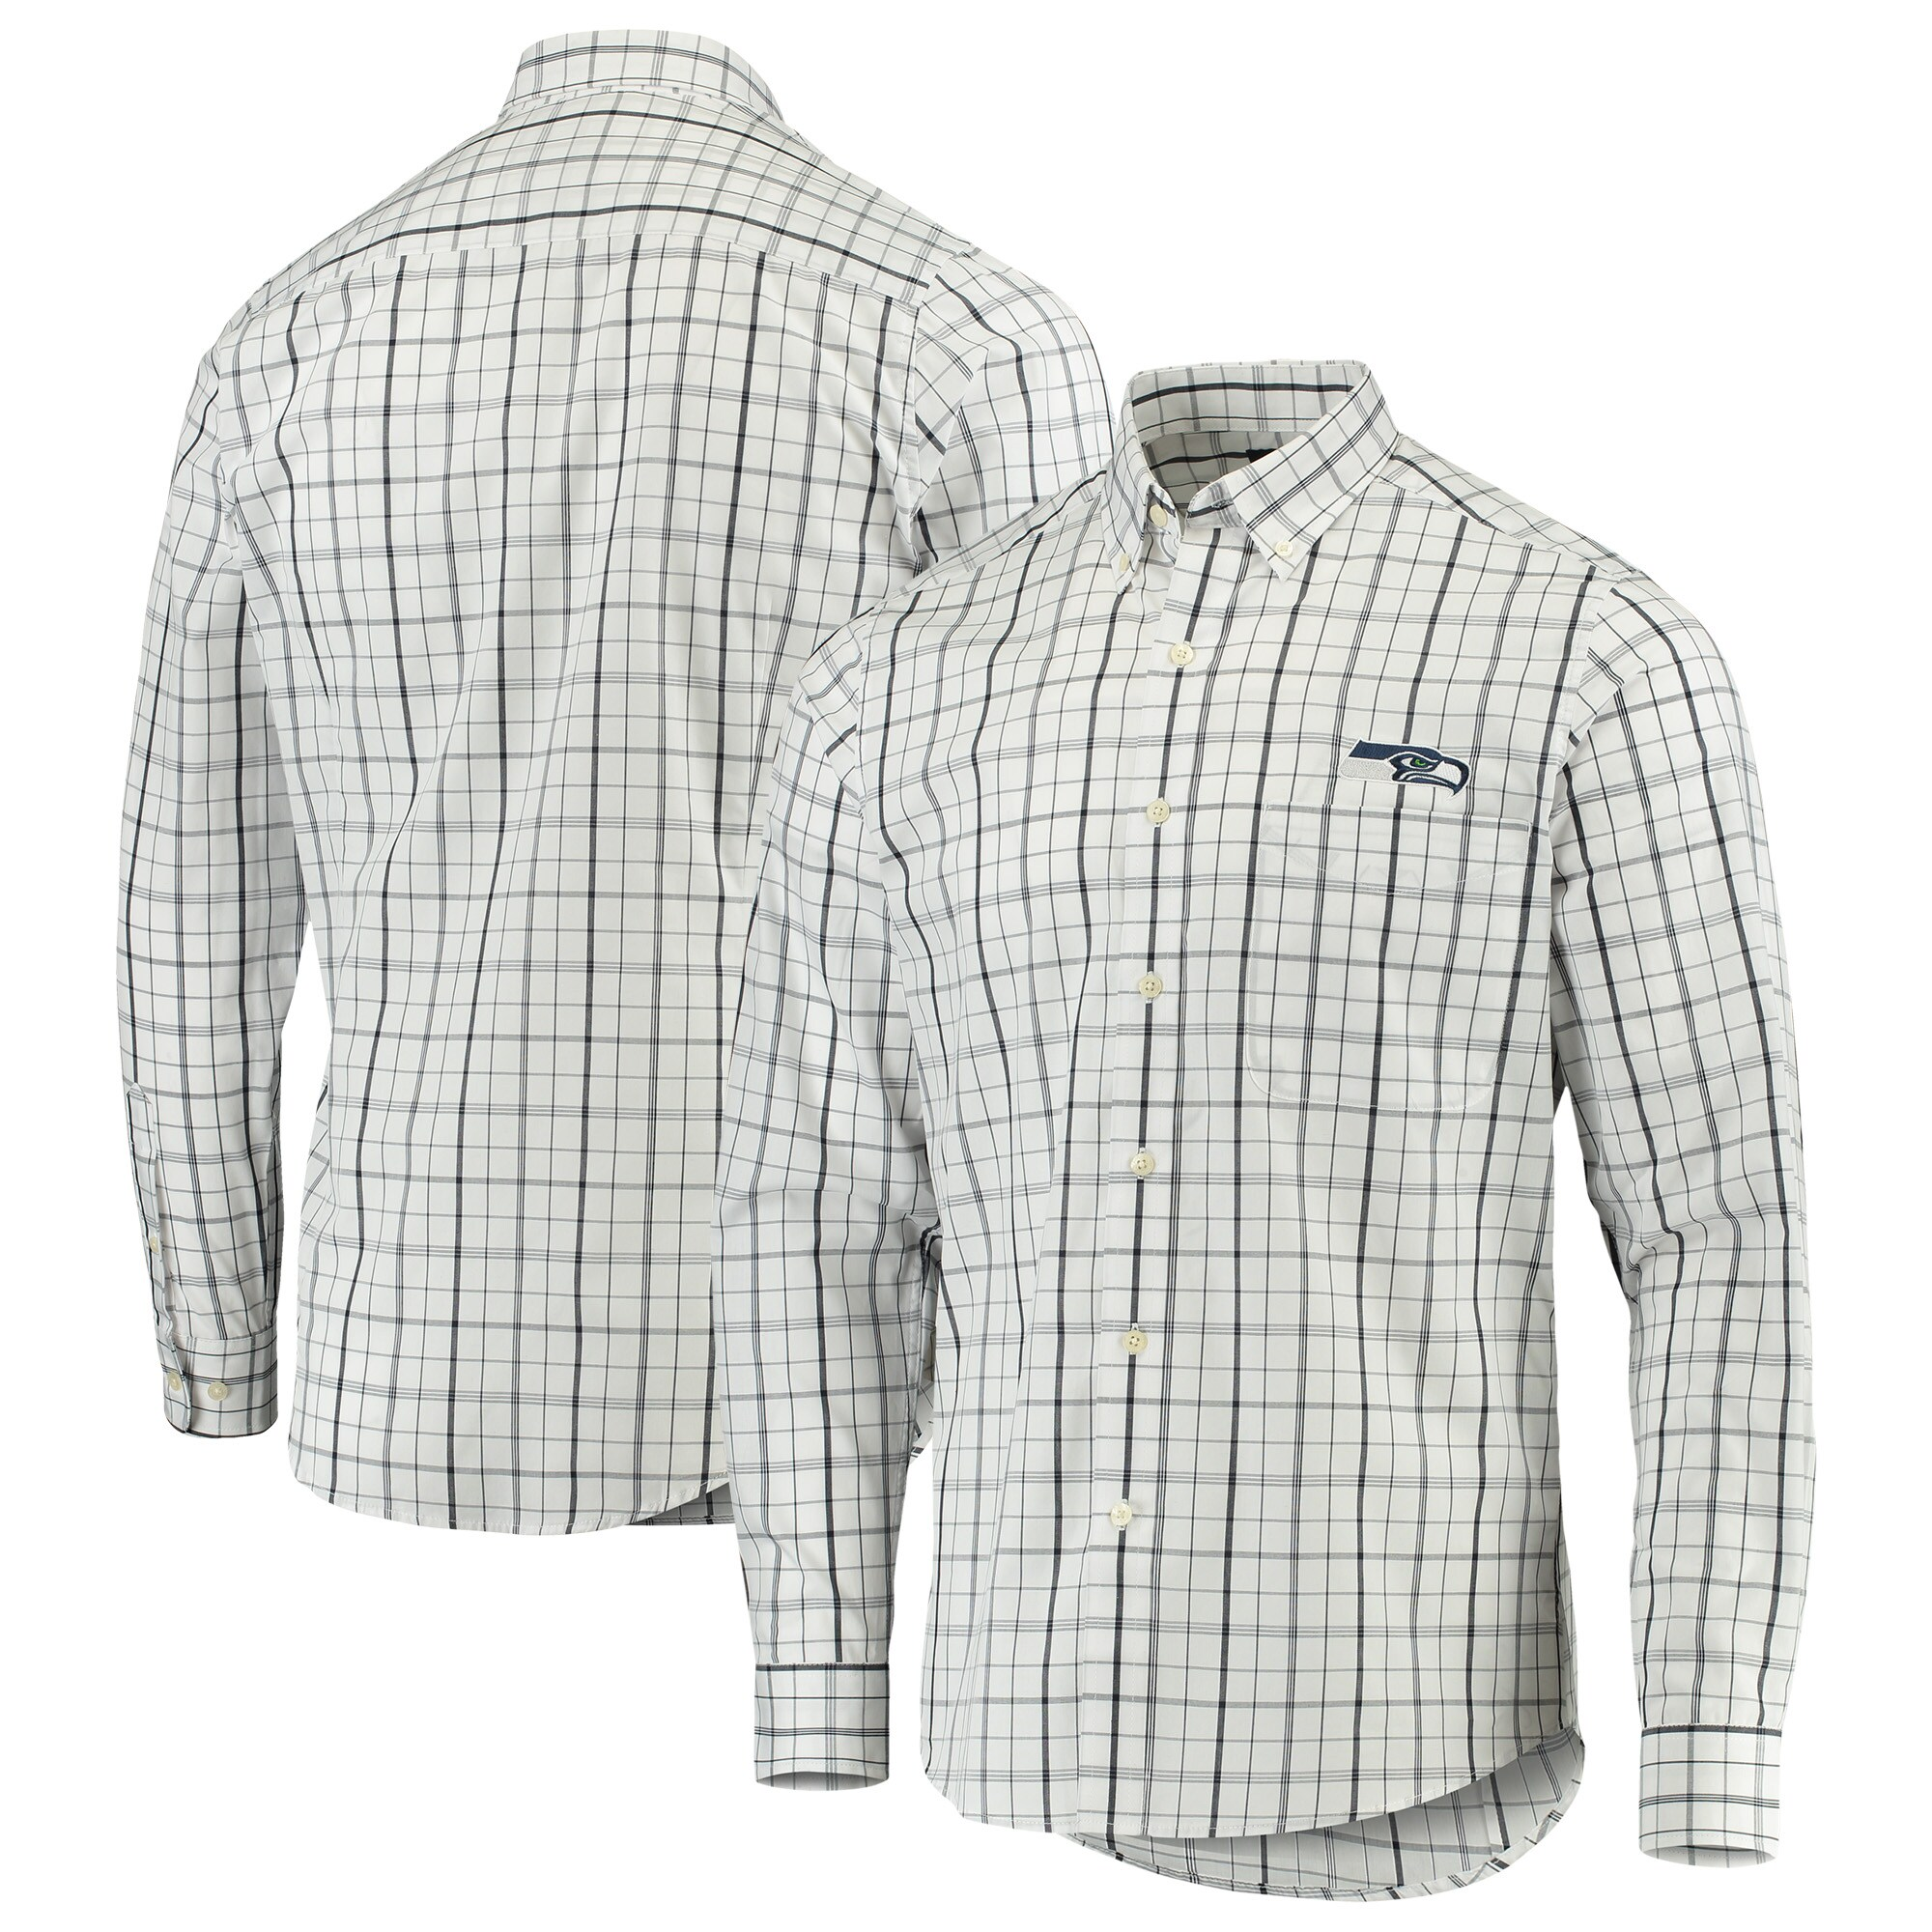 Seattle Seahawks Antigua Keen Long Sleeve Button-Down Shirt - White/College Navy